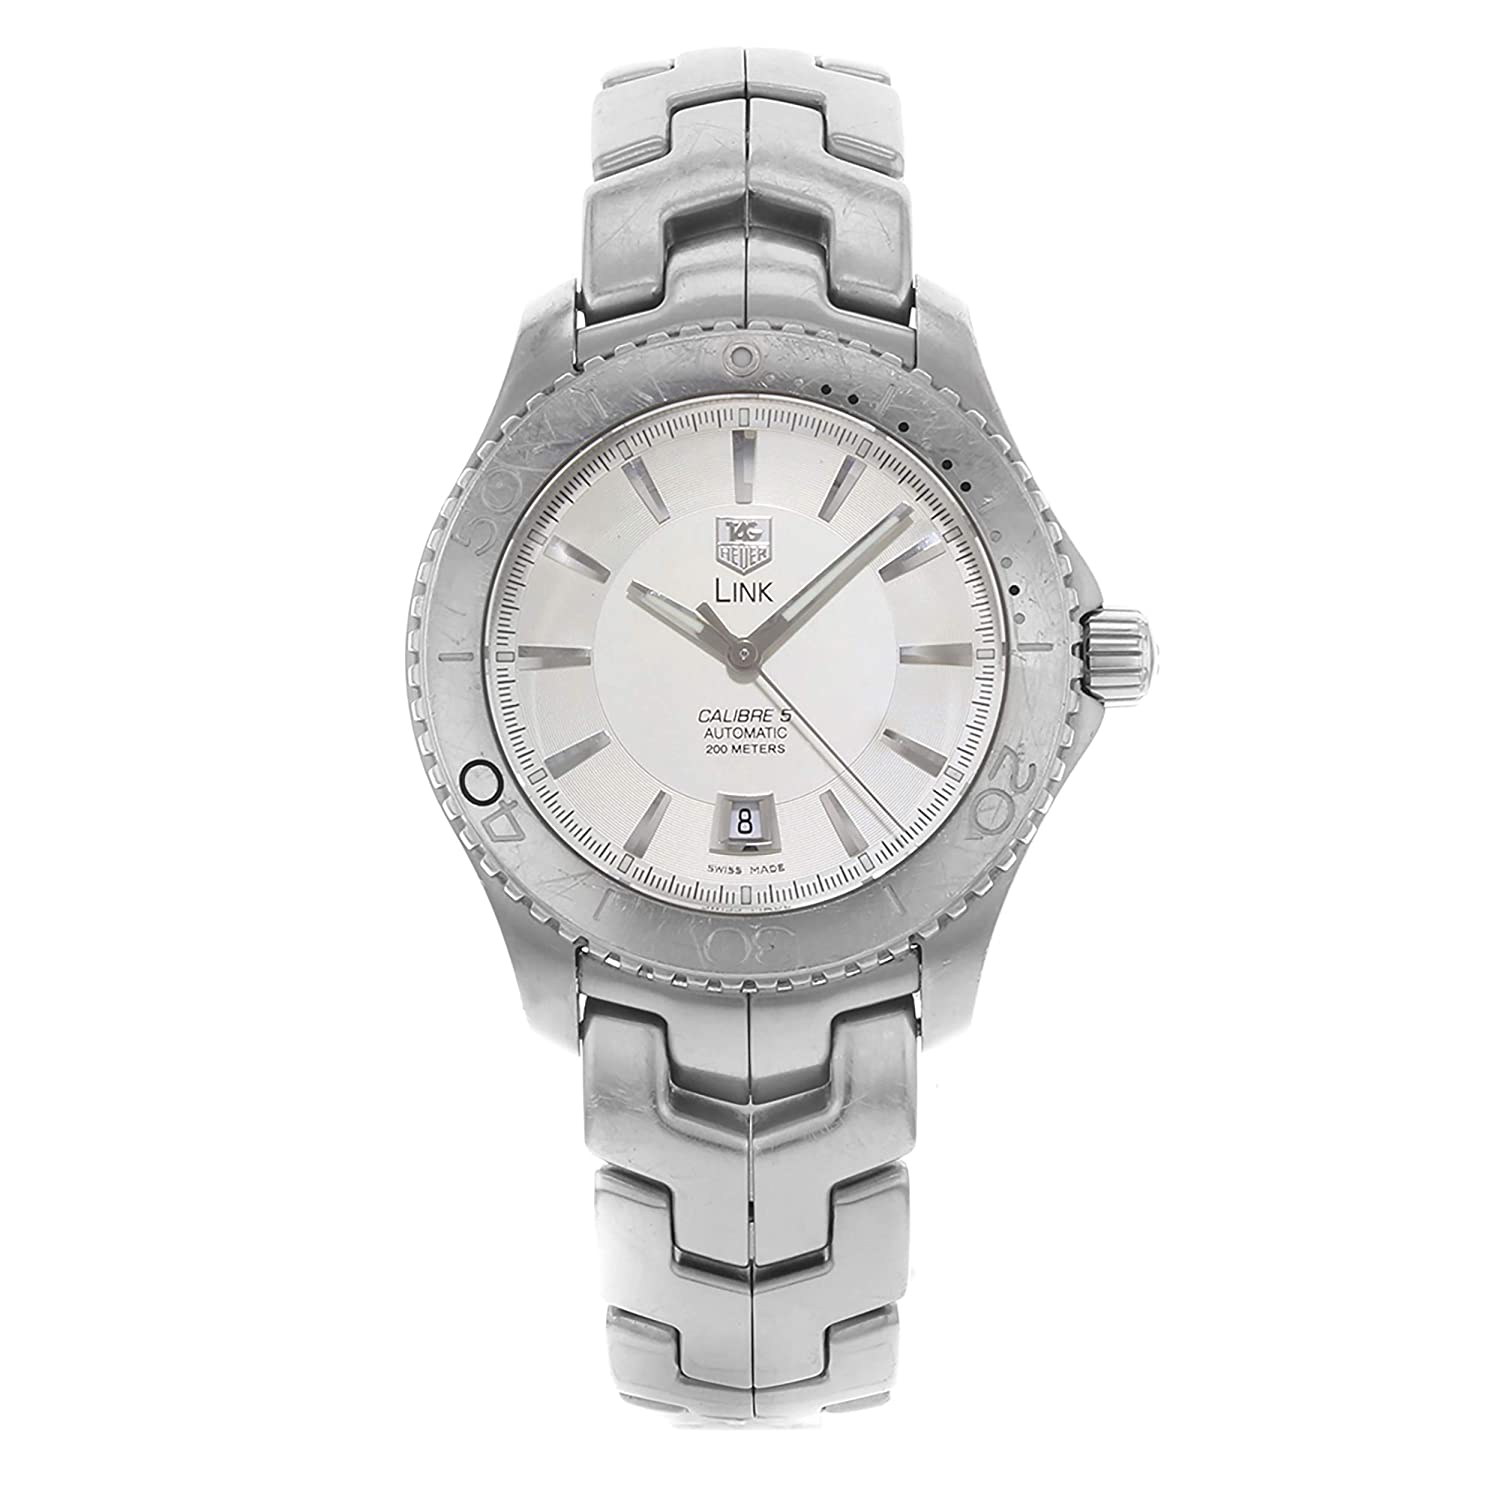 76ddffb5a31 Amazon.com: TAG Heuer Men's WJ201B.BA0591 Link Caliber 5 Automatic Watch: Tag  Heuer: Watches